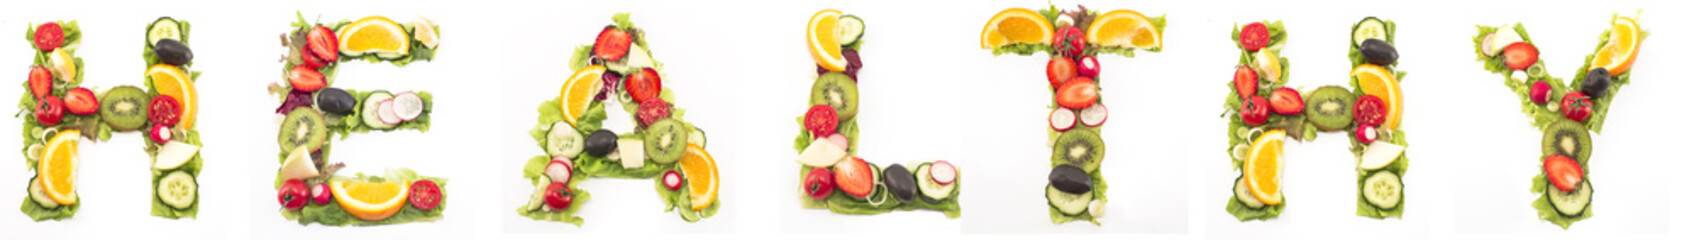 Word healthy made of salad and fruits